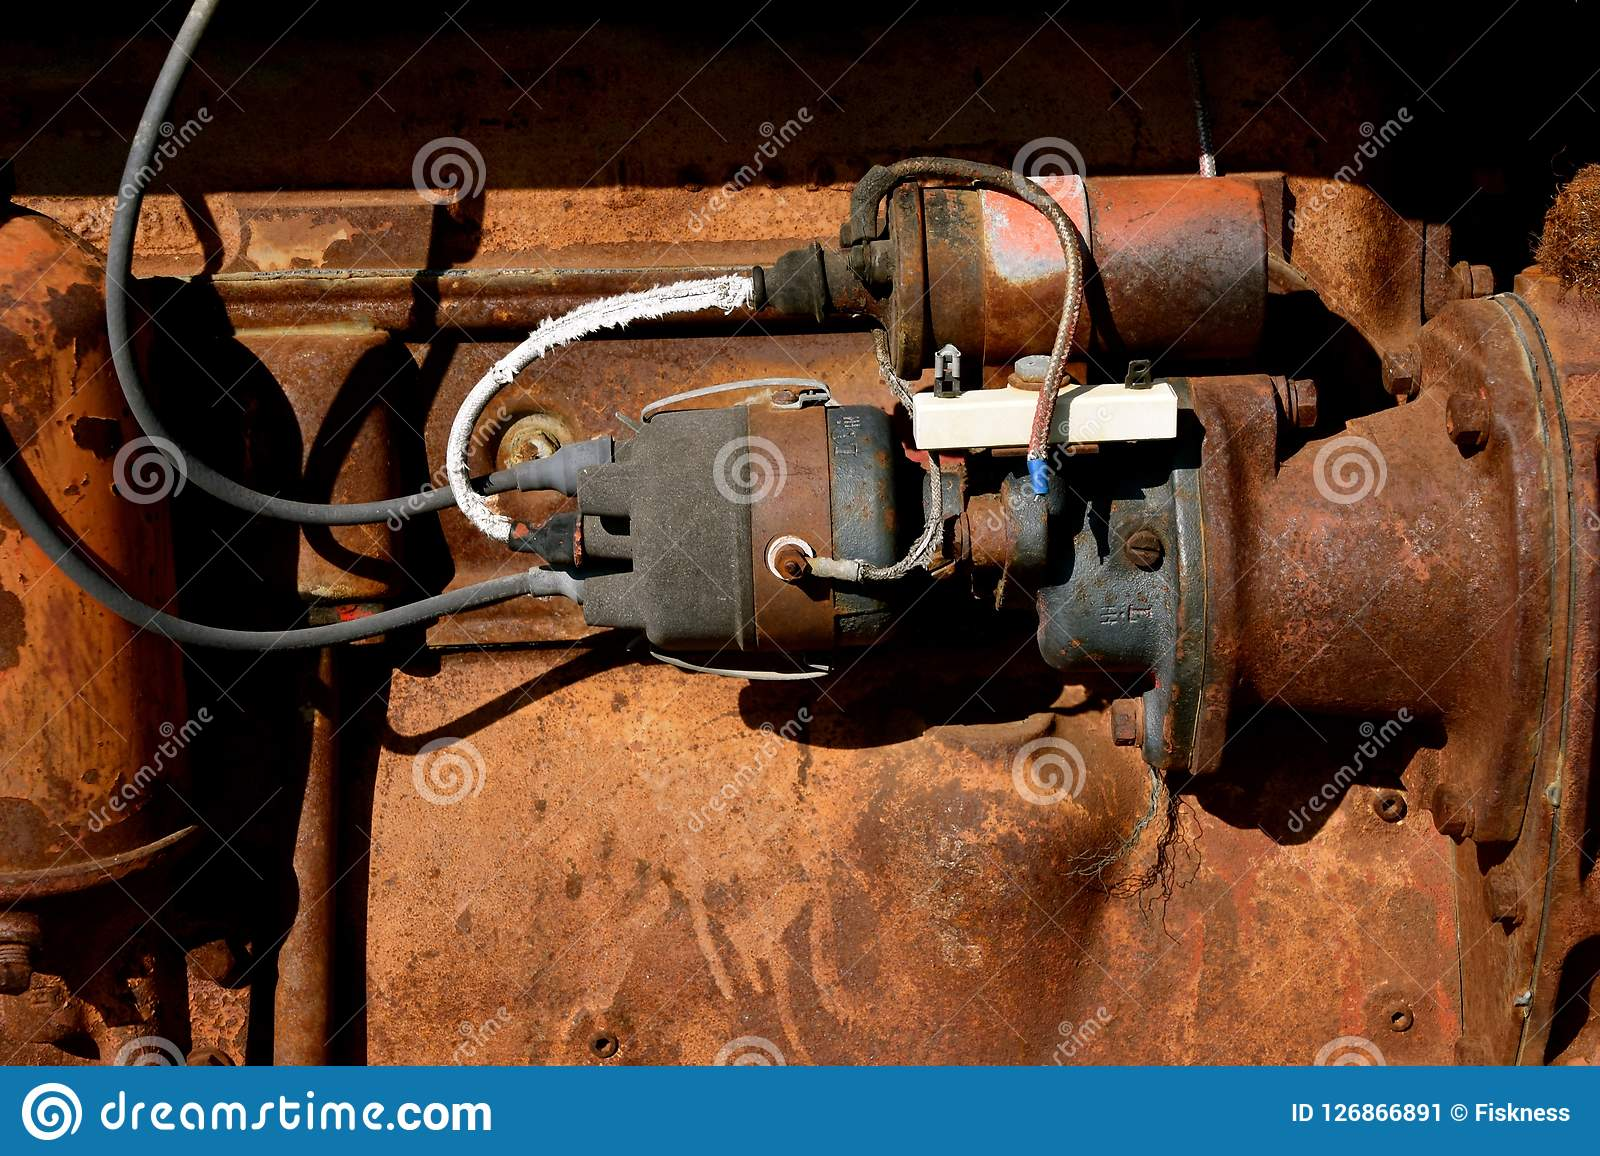 the electrical wiring and headquarters for starting an old rusty tractor